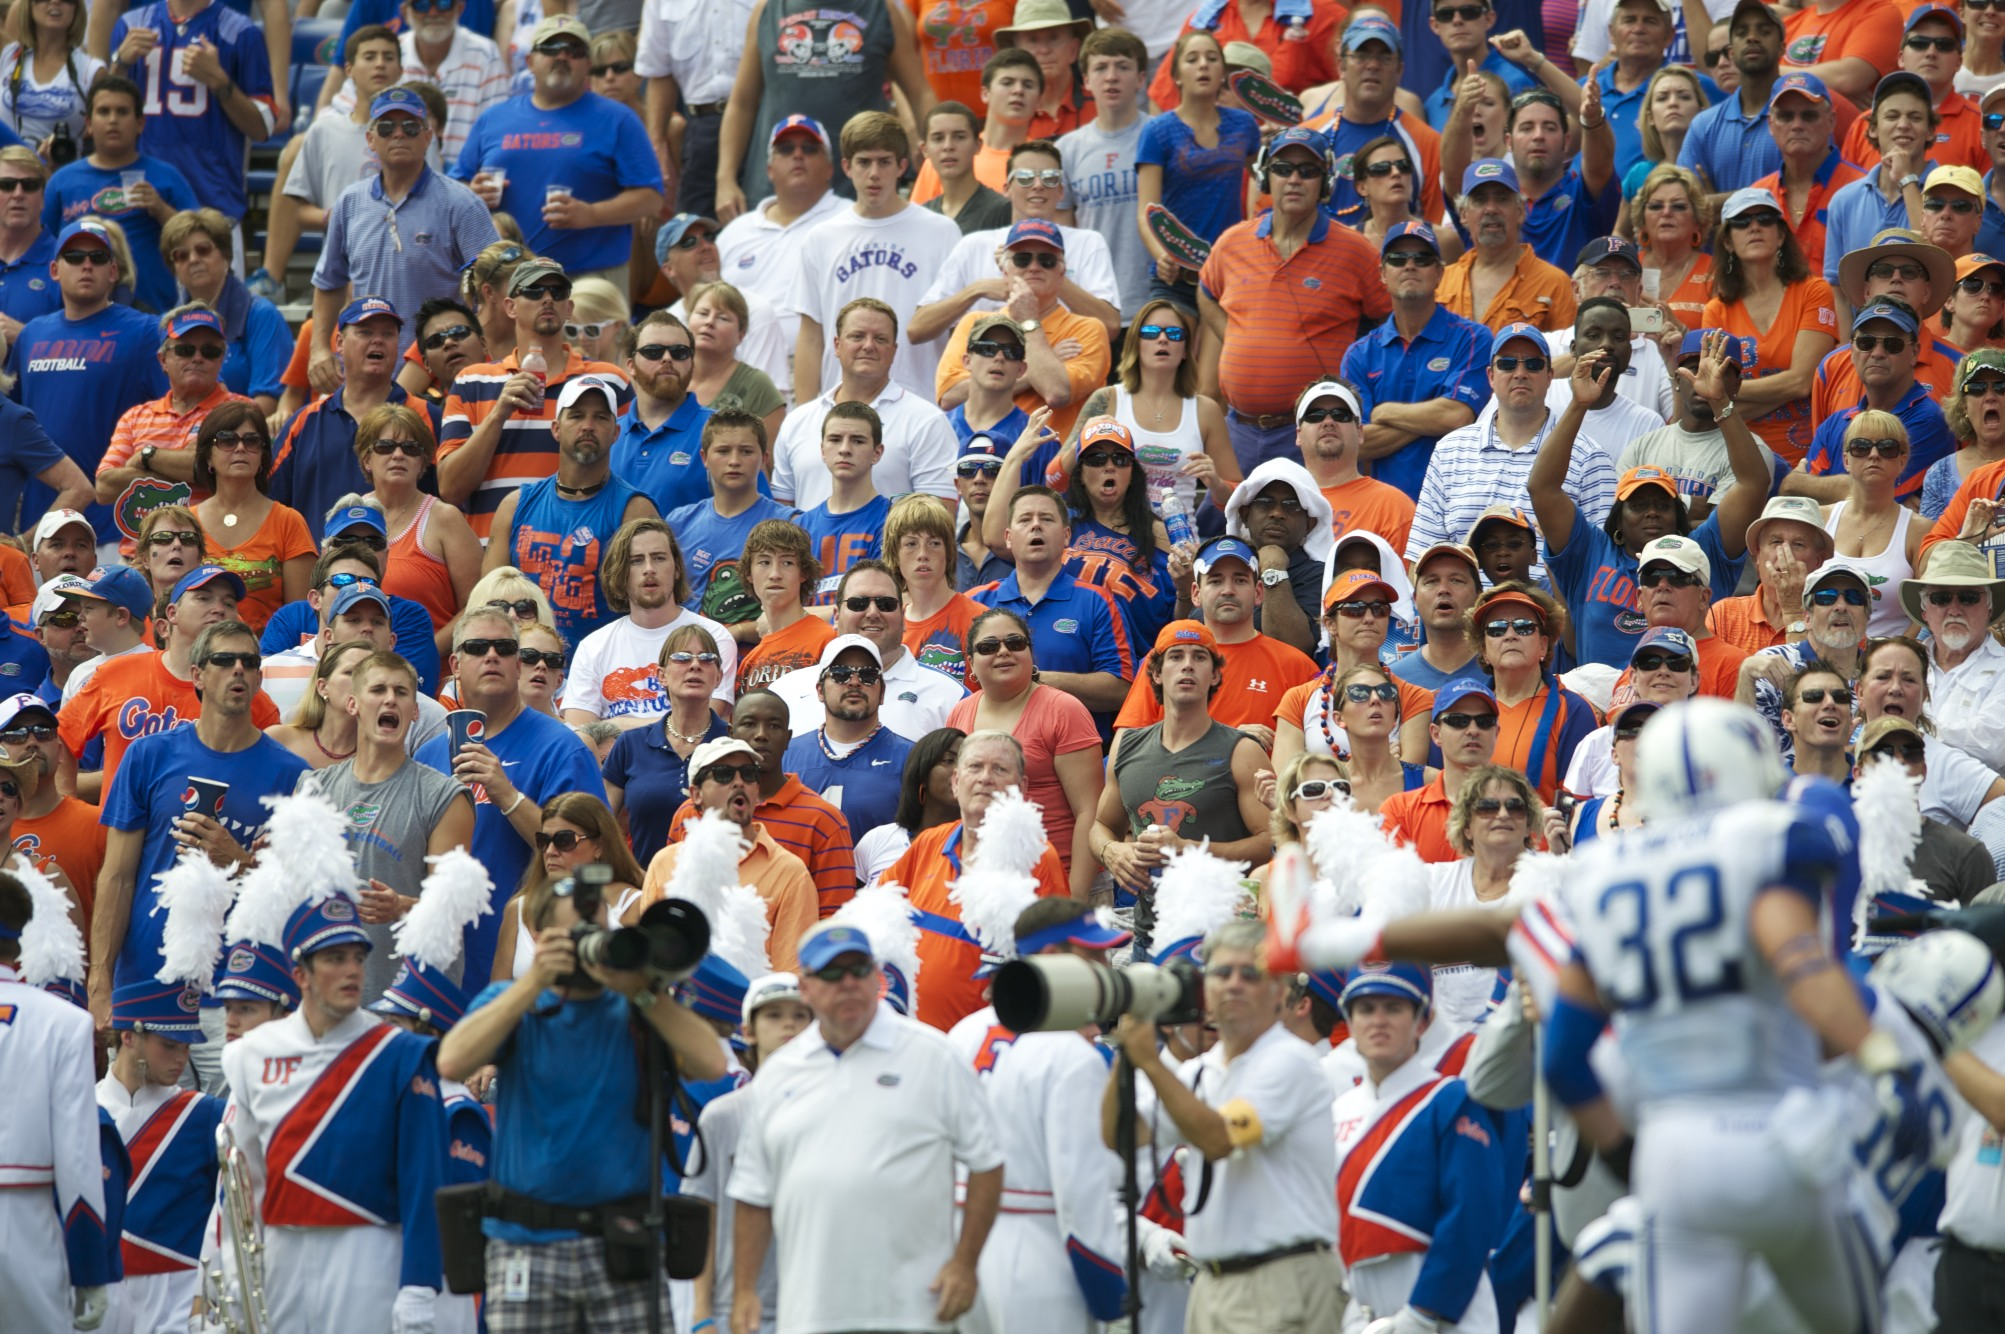 Florida fans filled the stadium Saturday afternoon to watch the shutout against Kentucky.